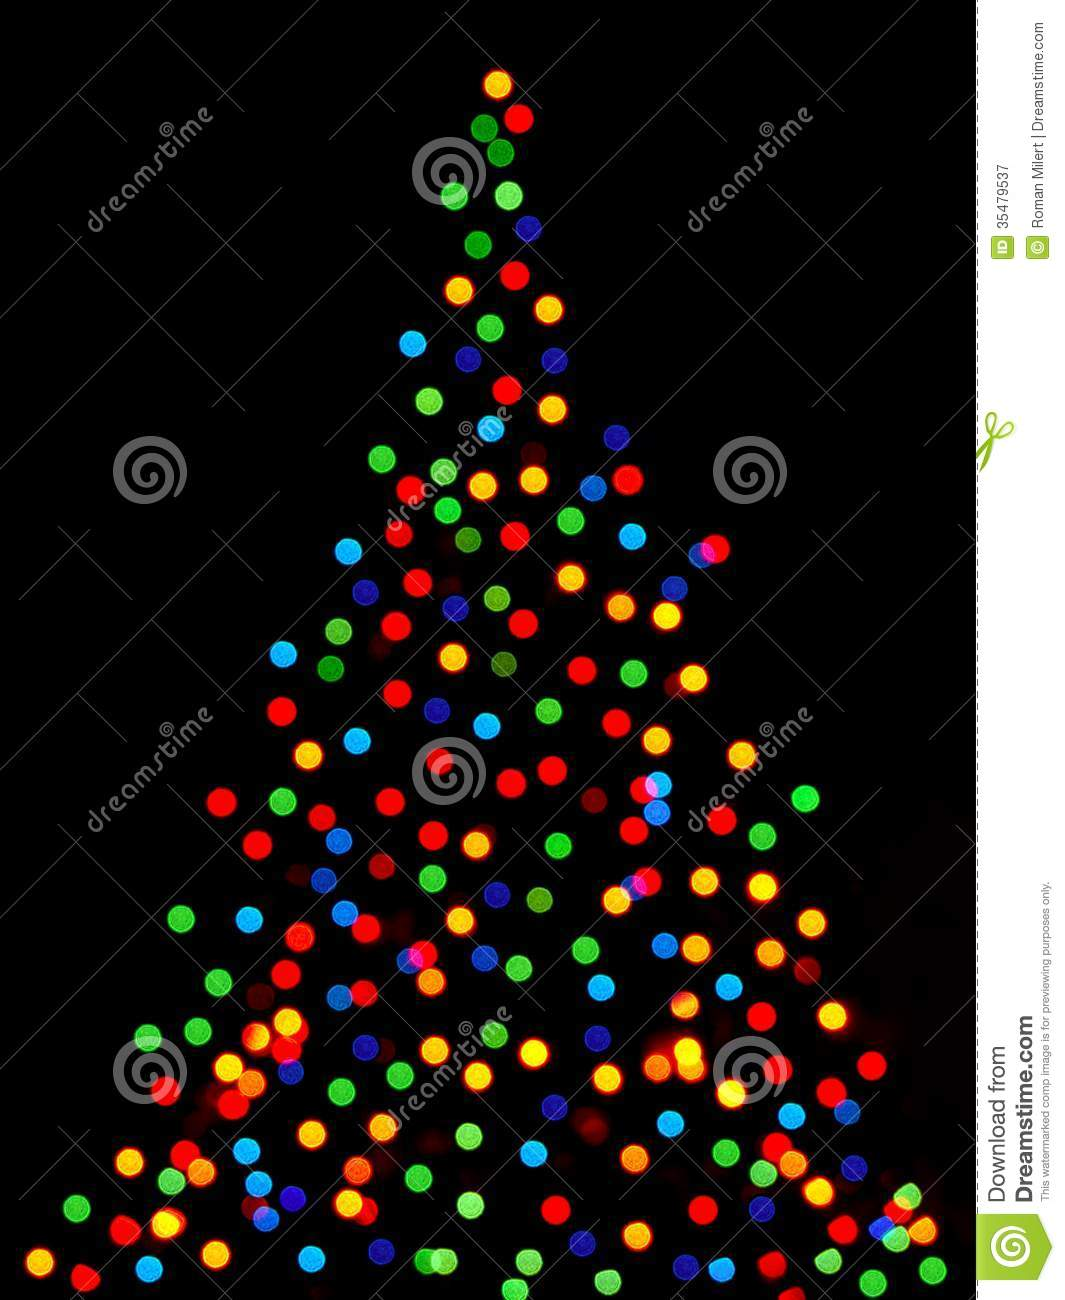 Christmas Tree Lights Stock Image. Image Of Blue